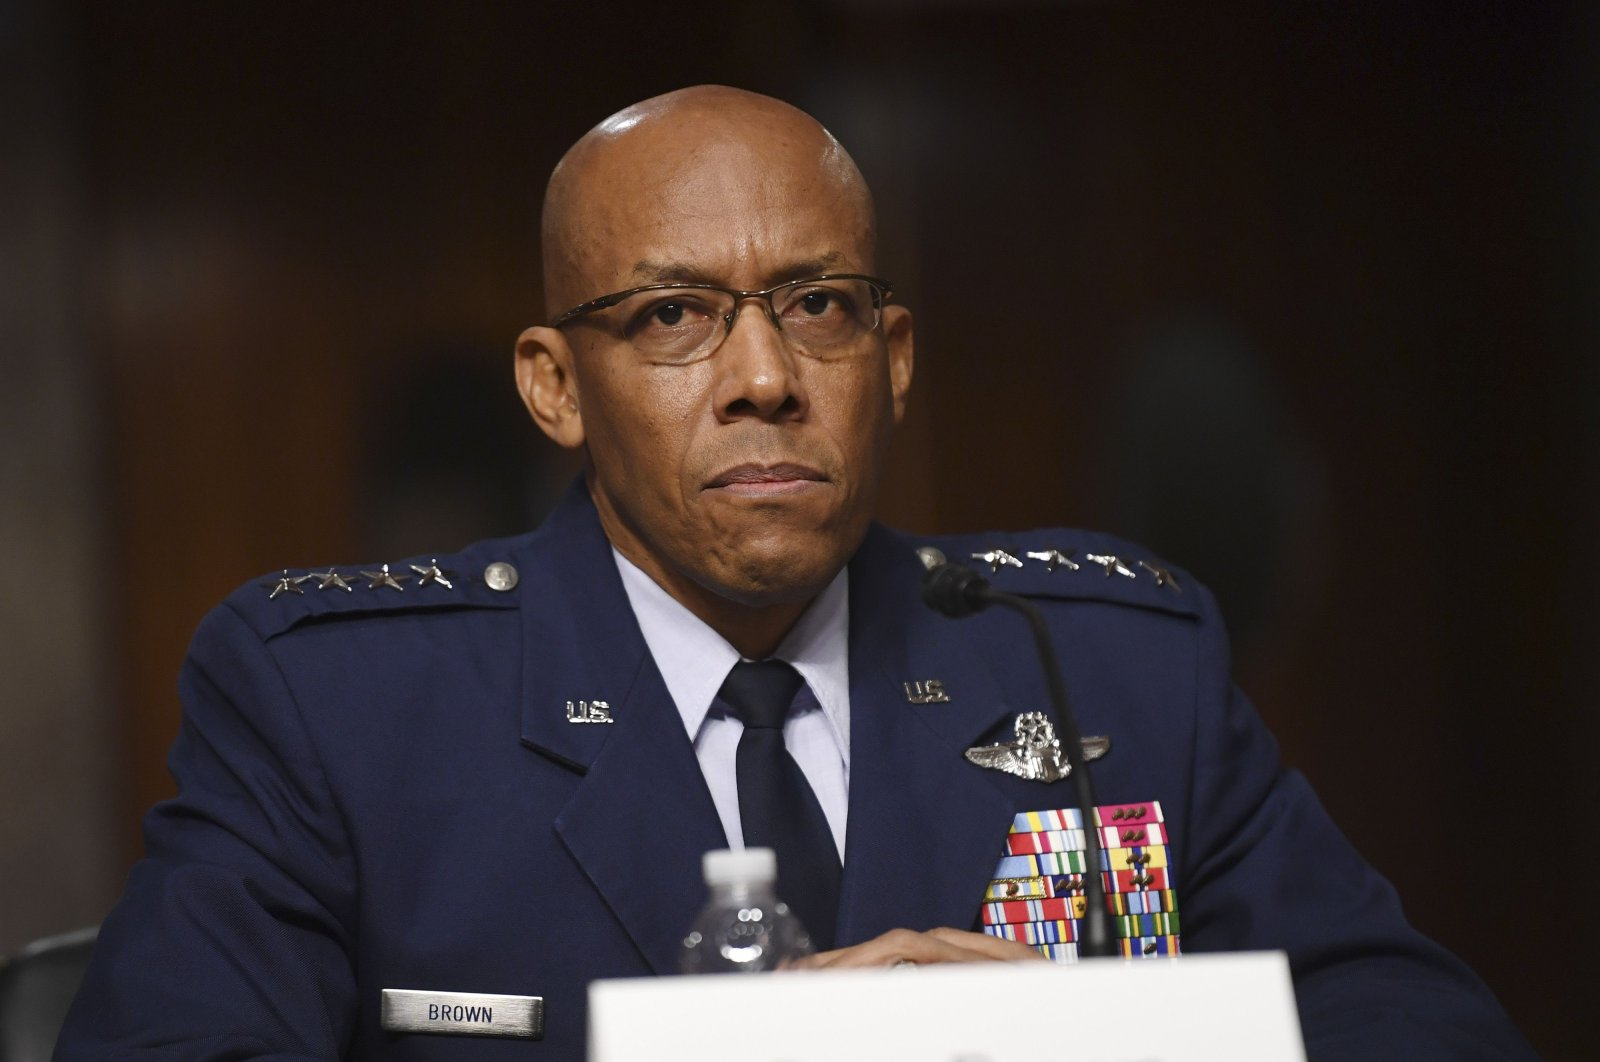 Gen. Charles Q. Brown, Jr. testifies on his nomination to be Chief of Staff of the United States Air Force before the Senate Armed Services Committee in Washington D.C., U.S., May 7, 2020. (AFP Photo)